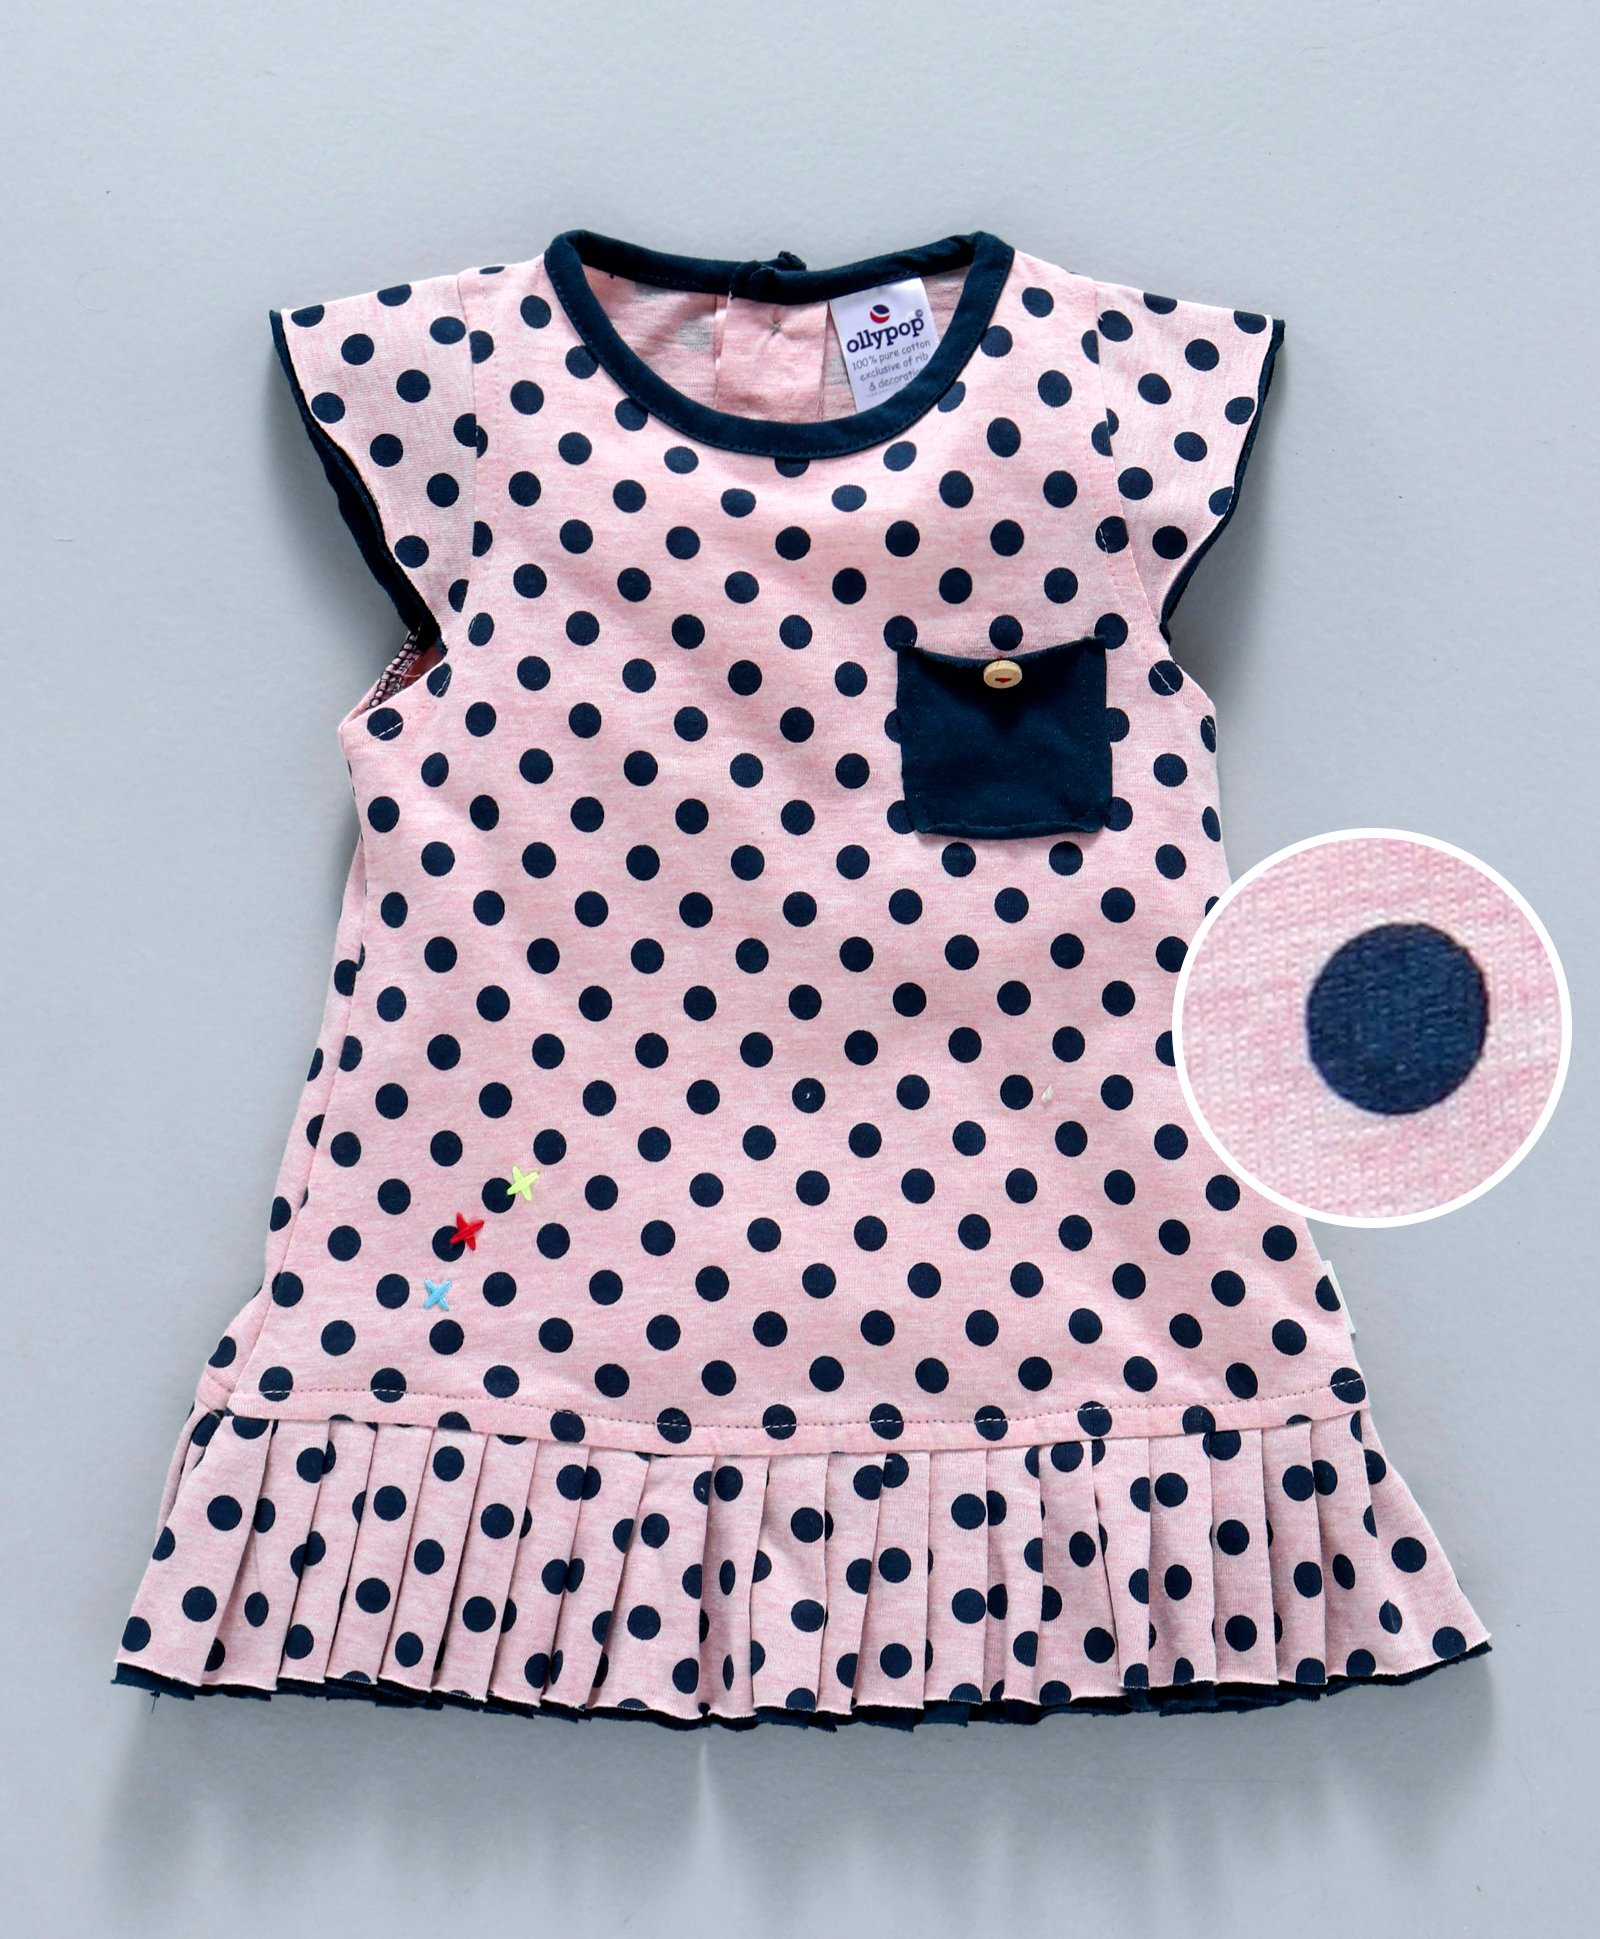 72a4f1573e4 Buy Ollypop Cap Sleeves Polka Dotted Frock Pink Blue for Girls (3-6 ...